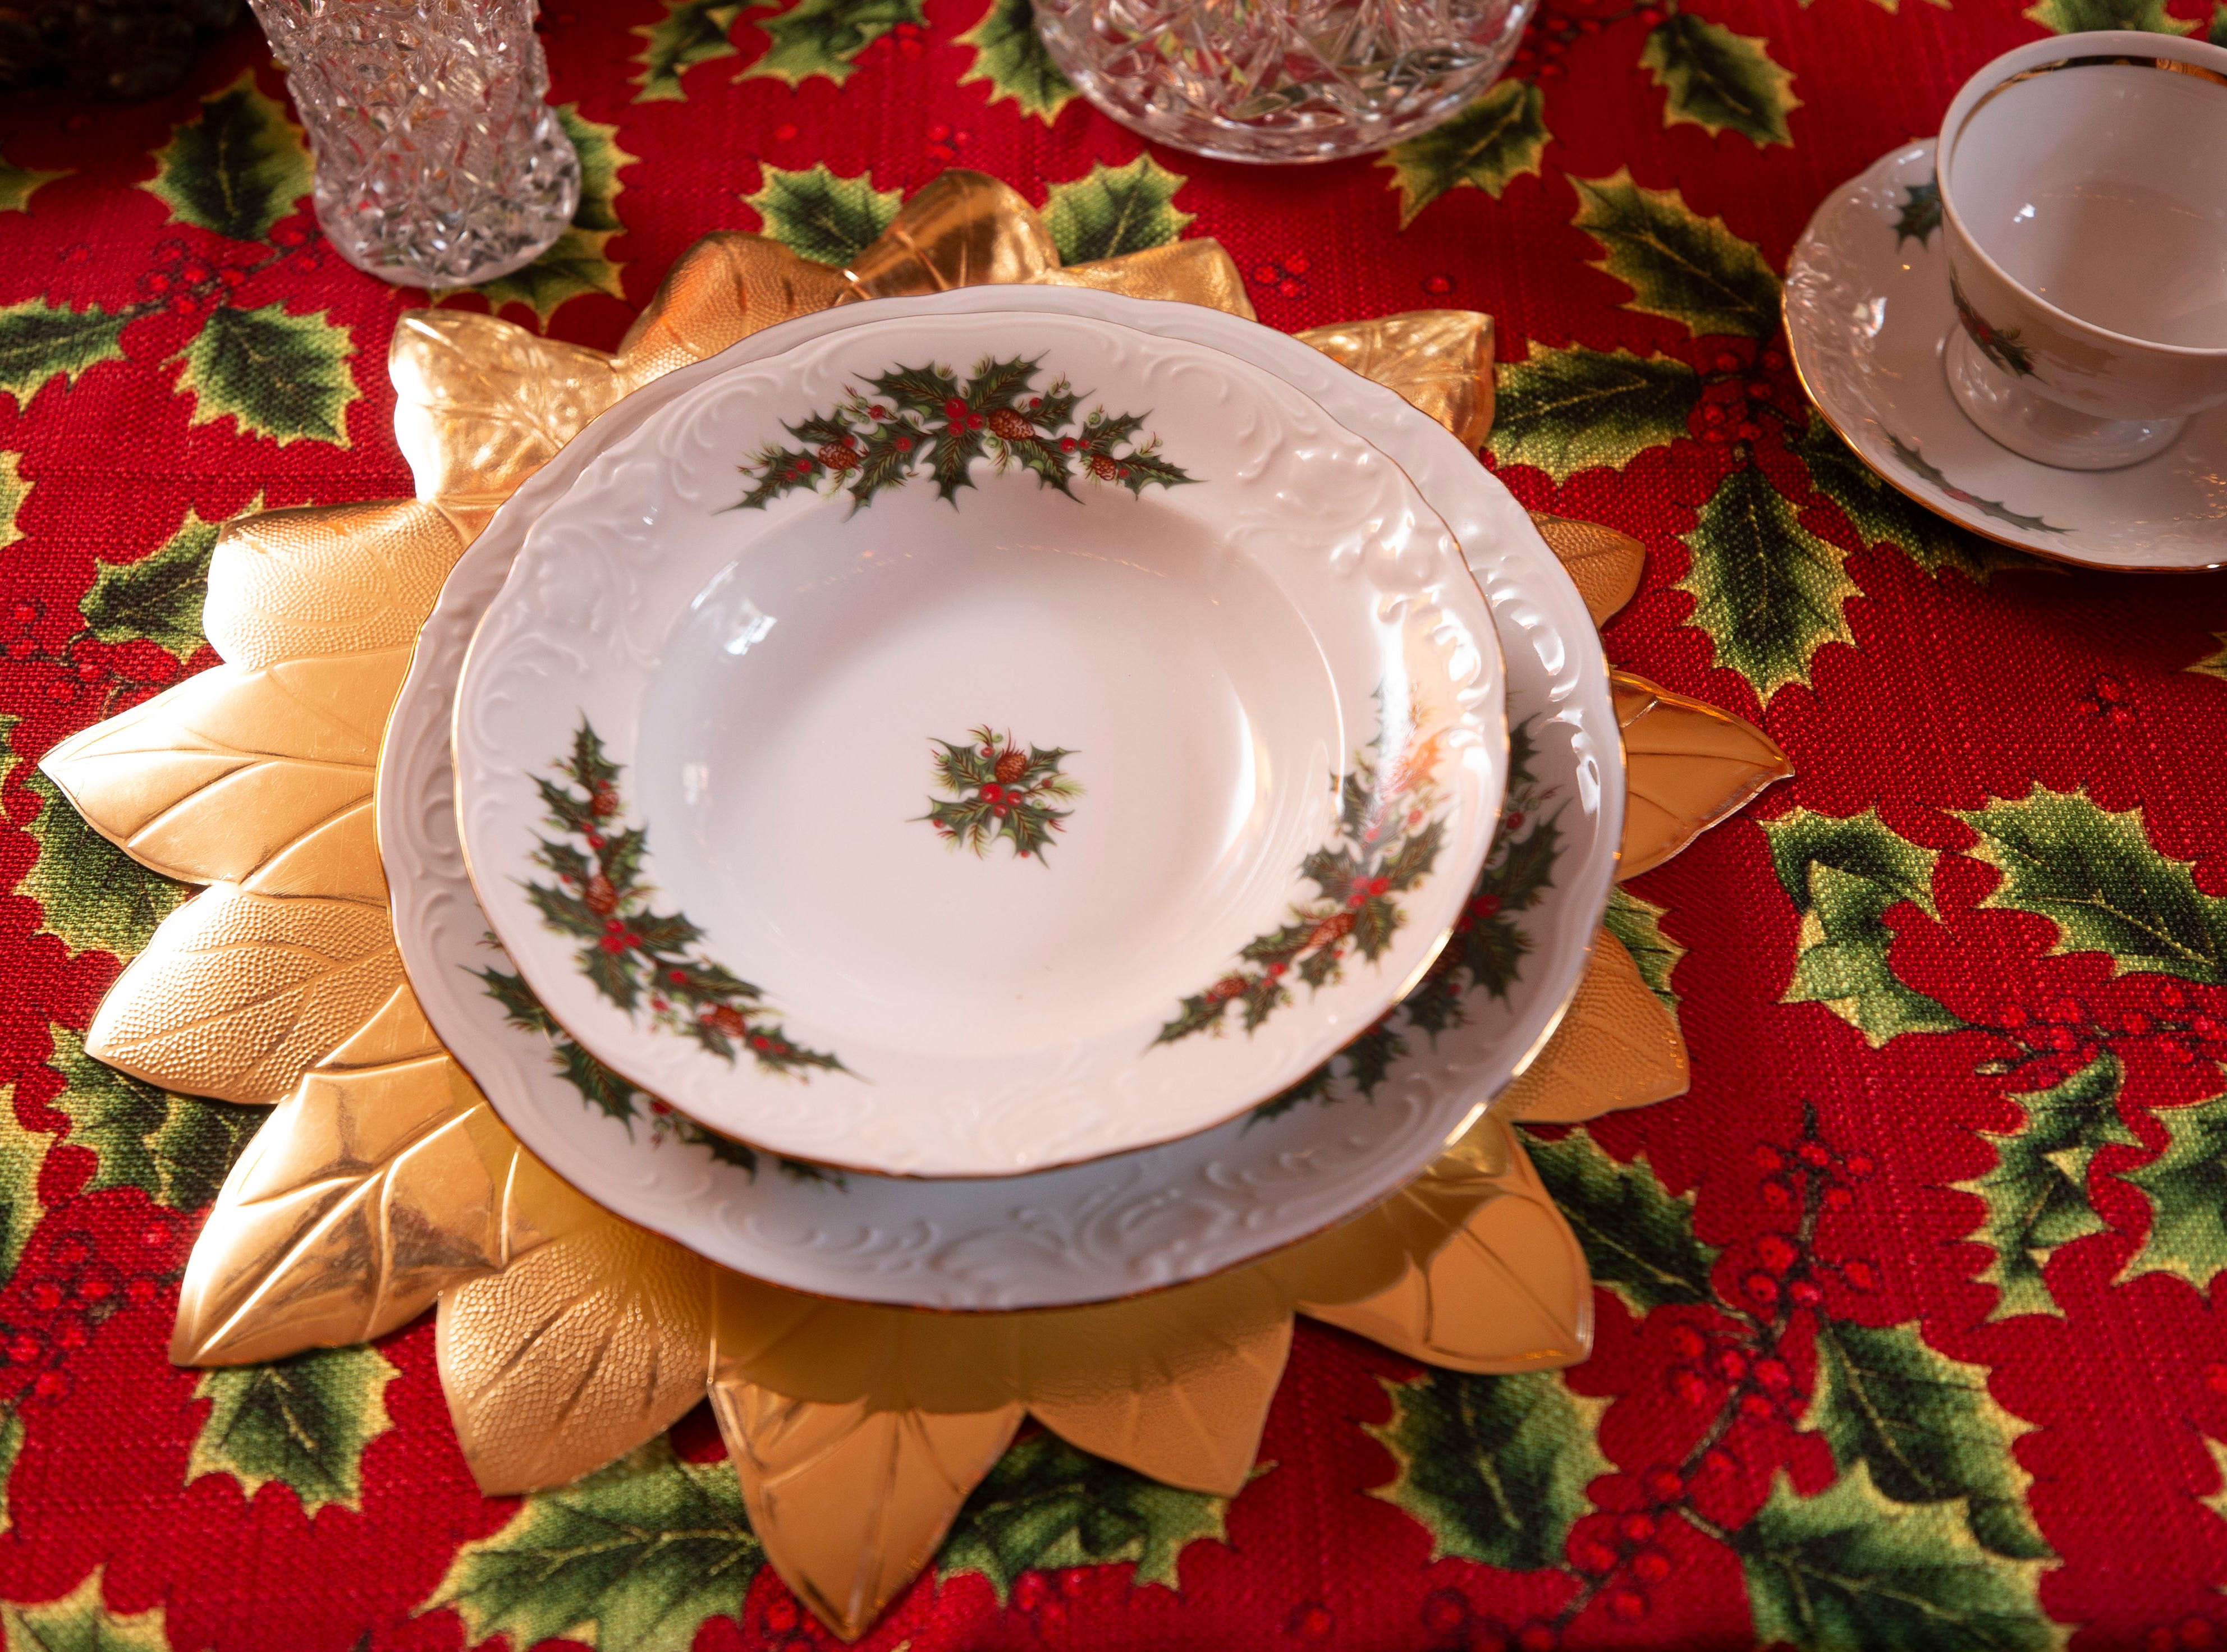 A placesetting in the Kitchen has the holiday theme, from the tablecloth to the china with the holly motif.